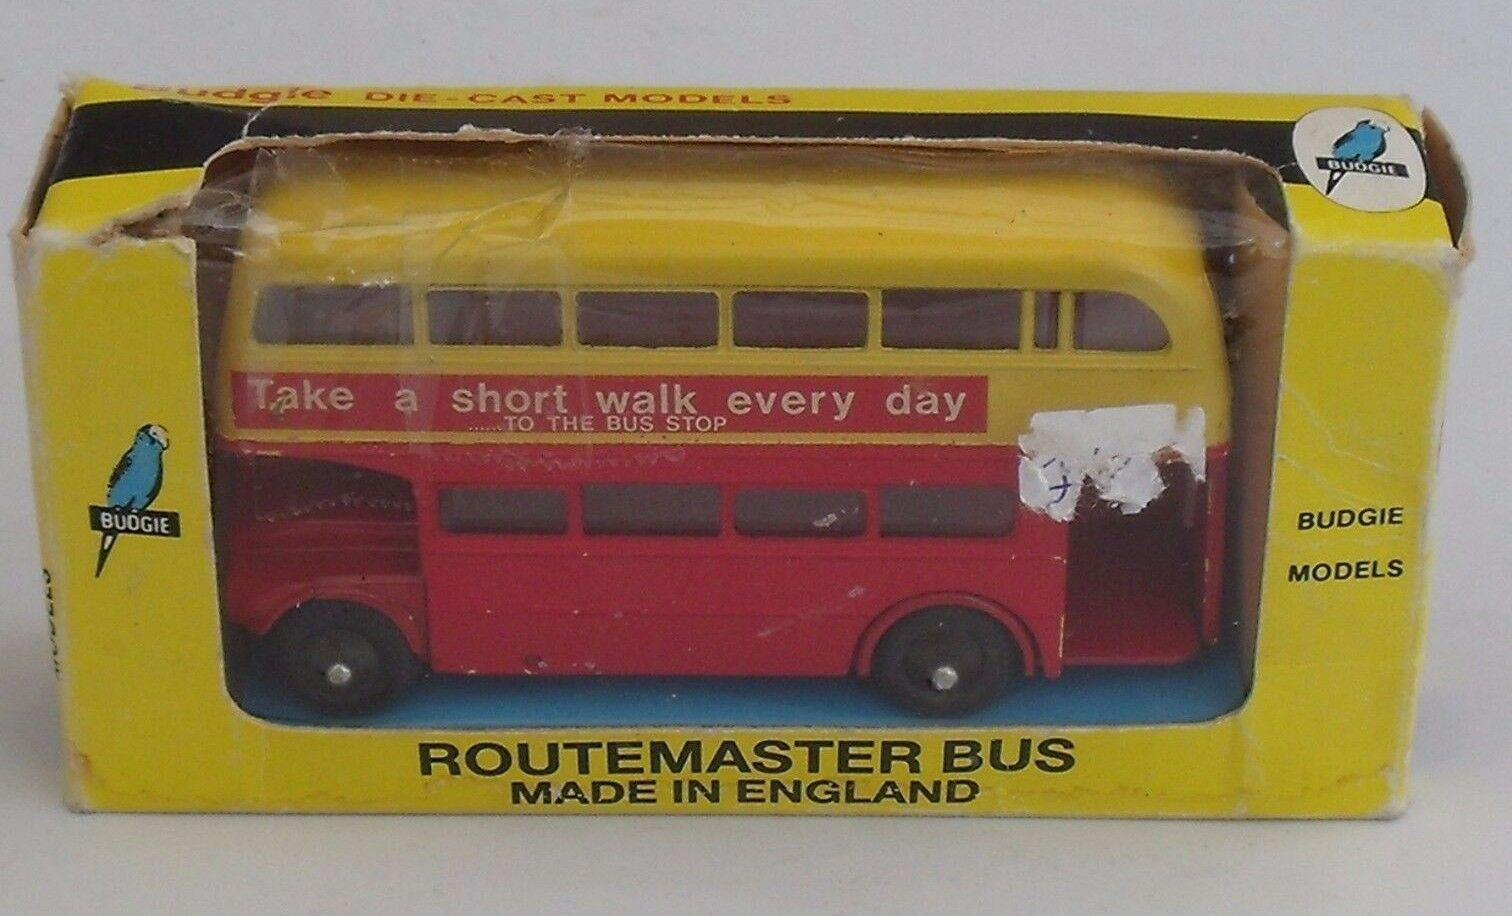 BUDGIE - ROUTEMASTER BUS - NEAR MINT & BOXED